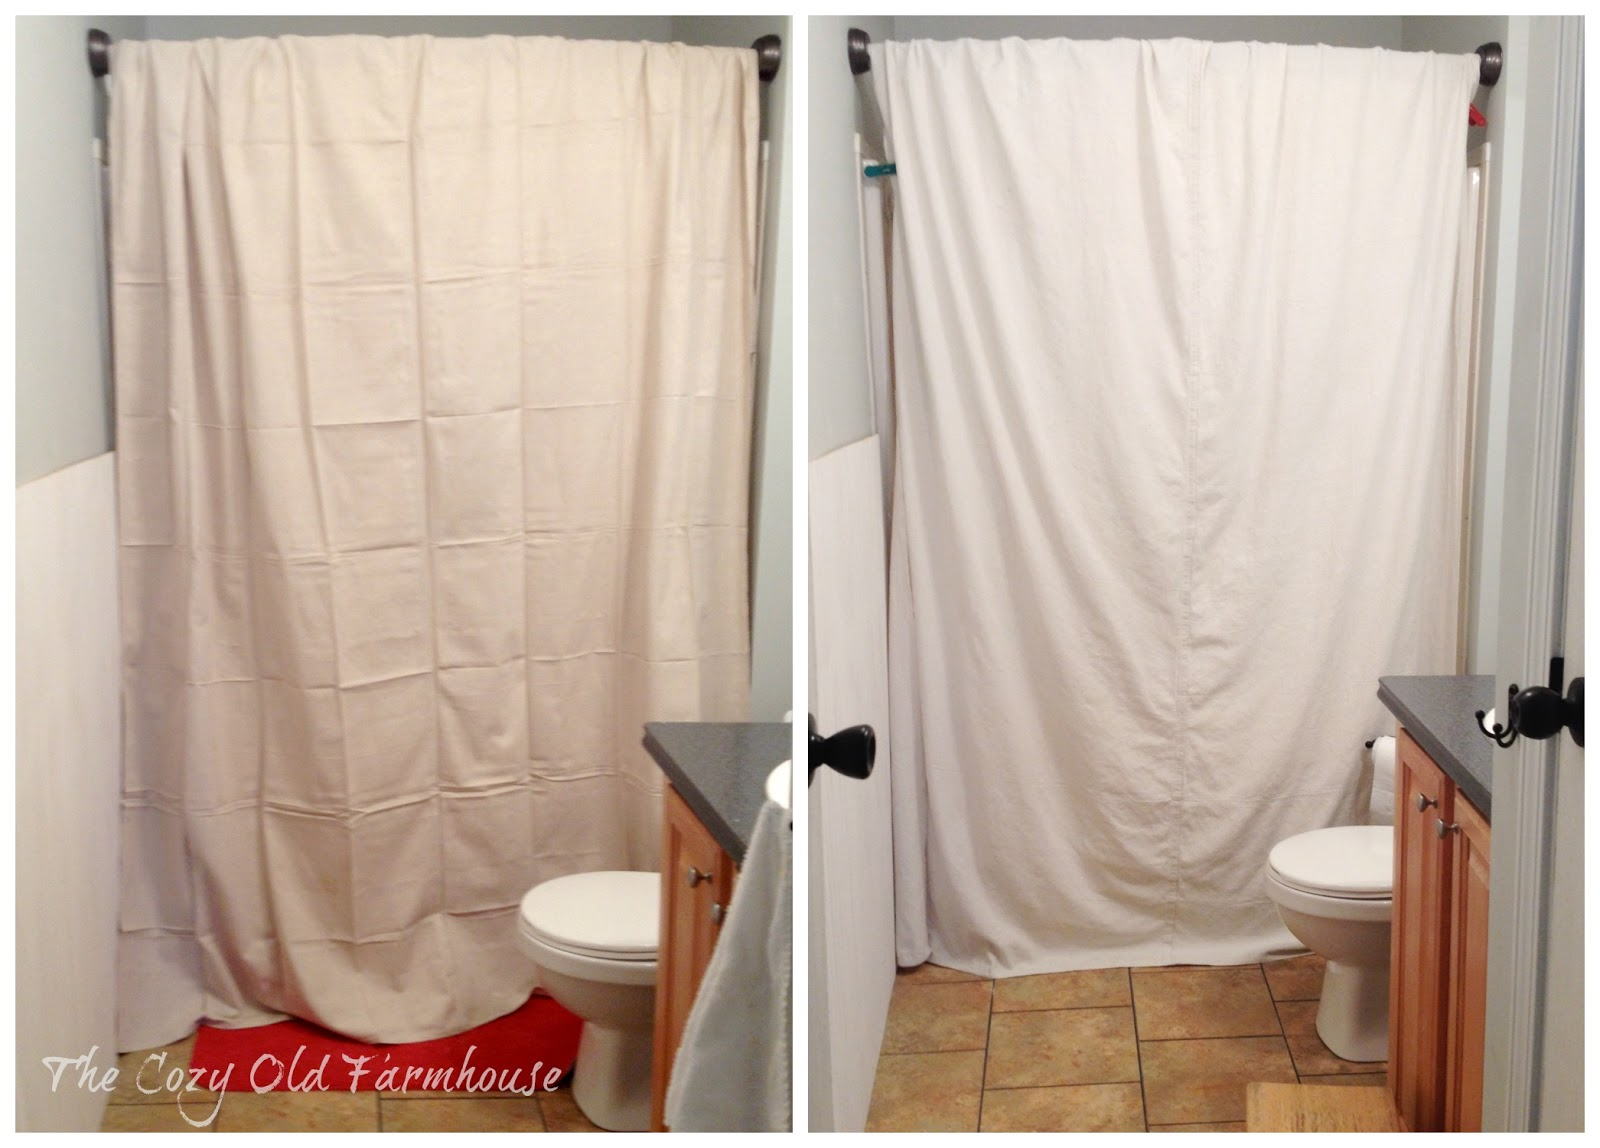 Bathroom curtains from walmart - The Cozy Old Farmhouse Painter S Dropcloth Becomes Diy Grain Sack Shower Curtain